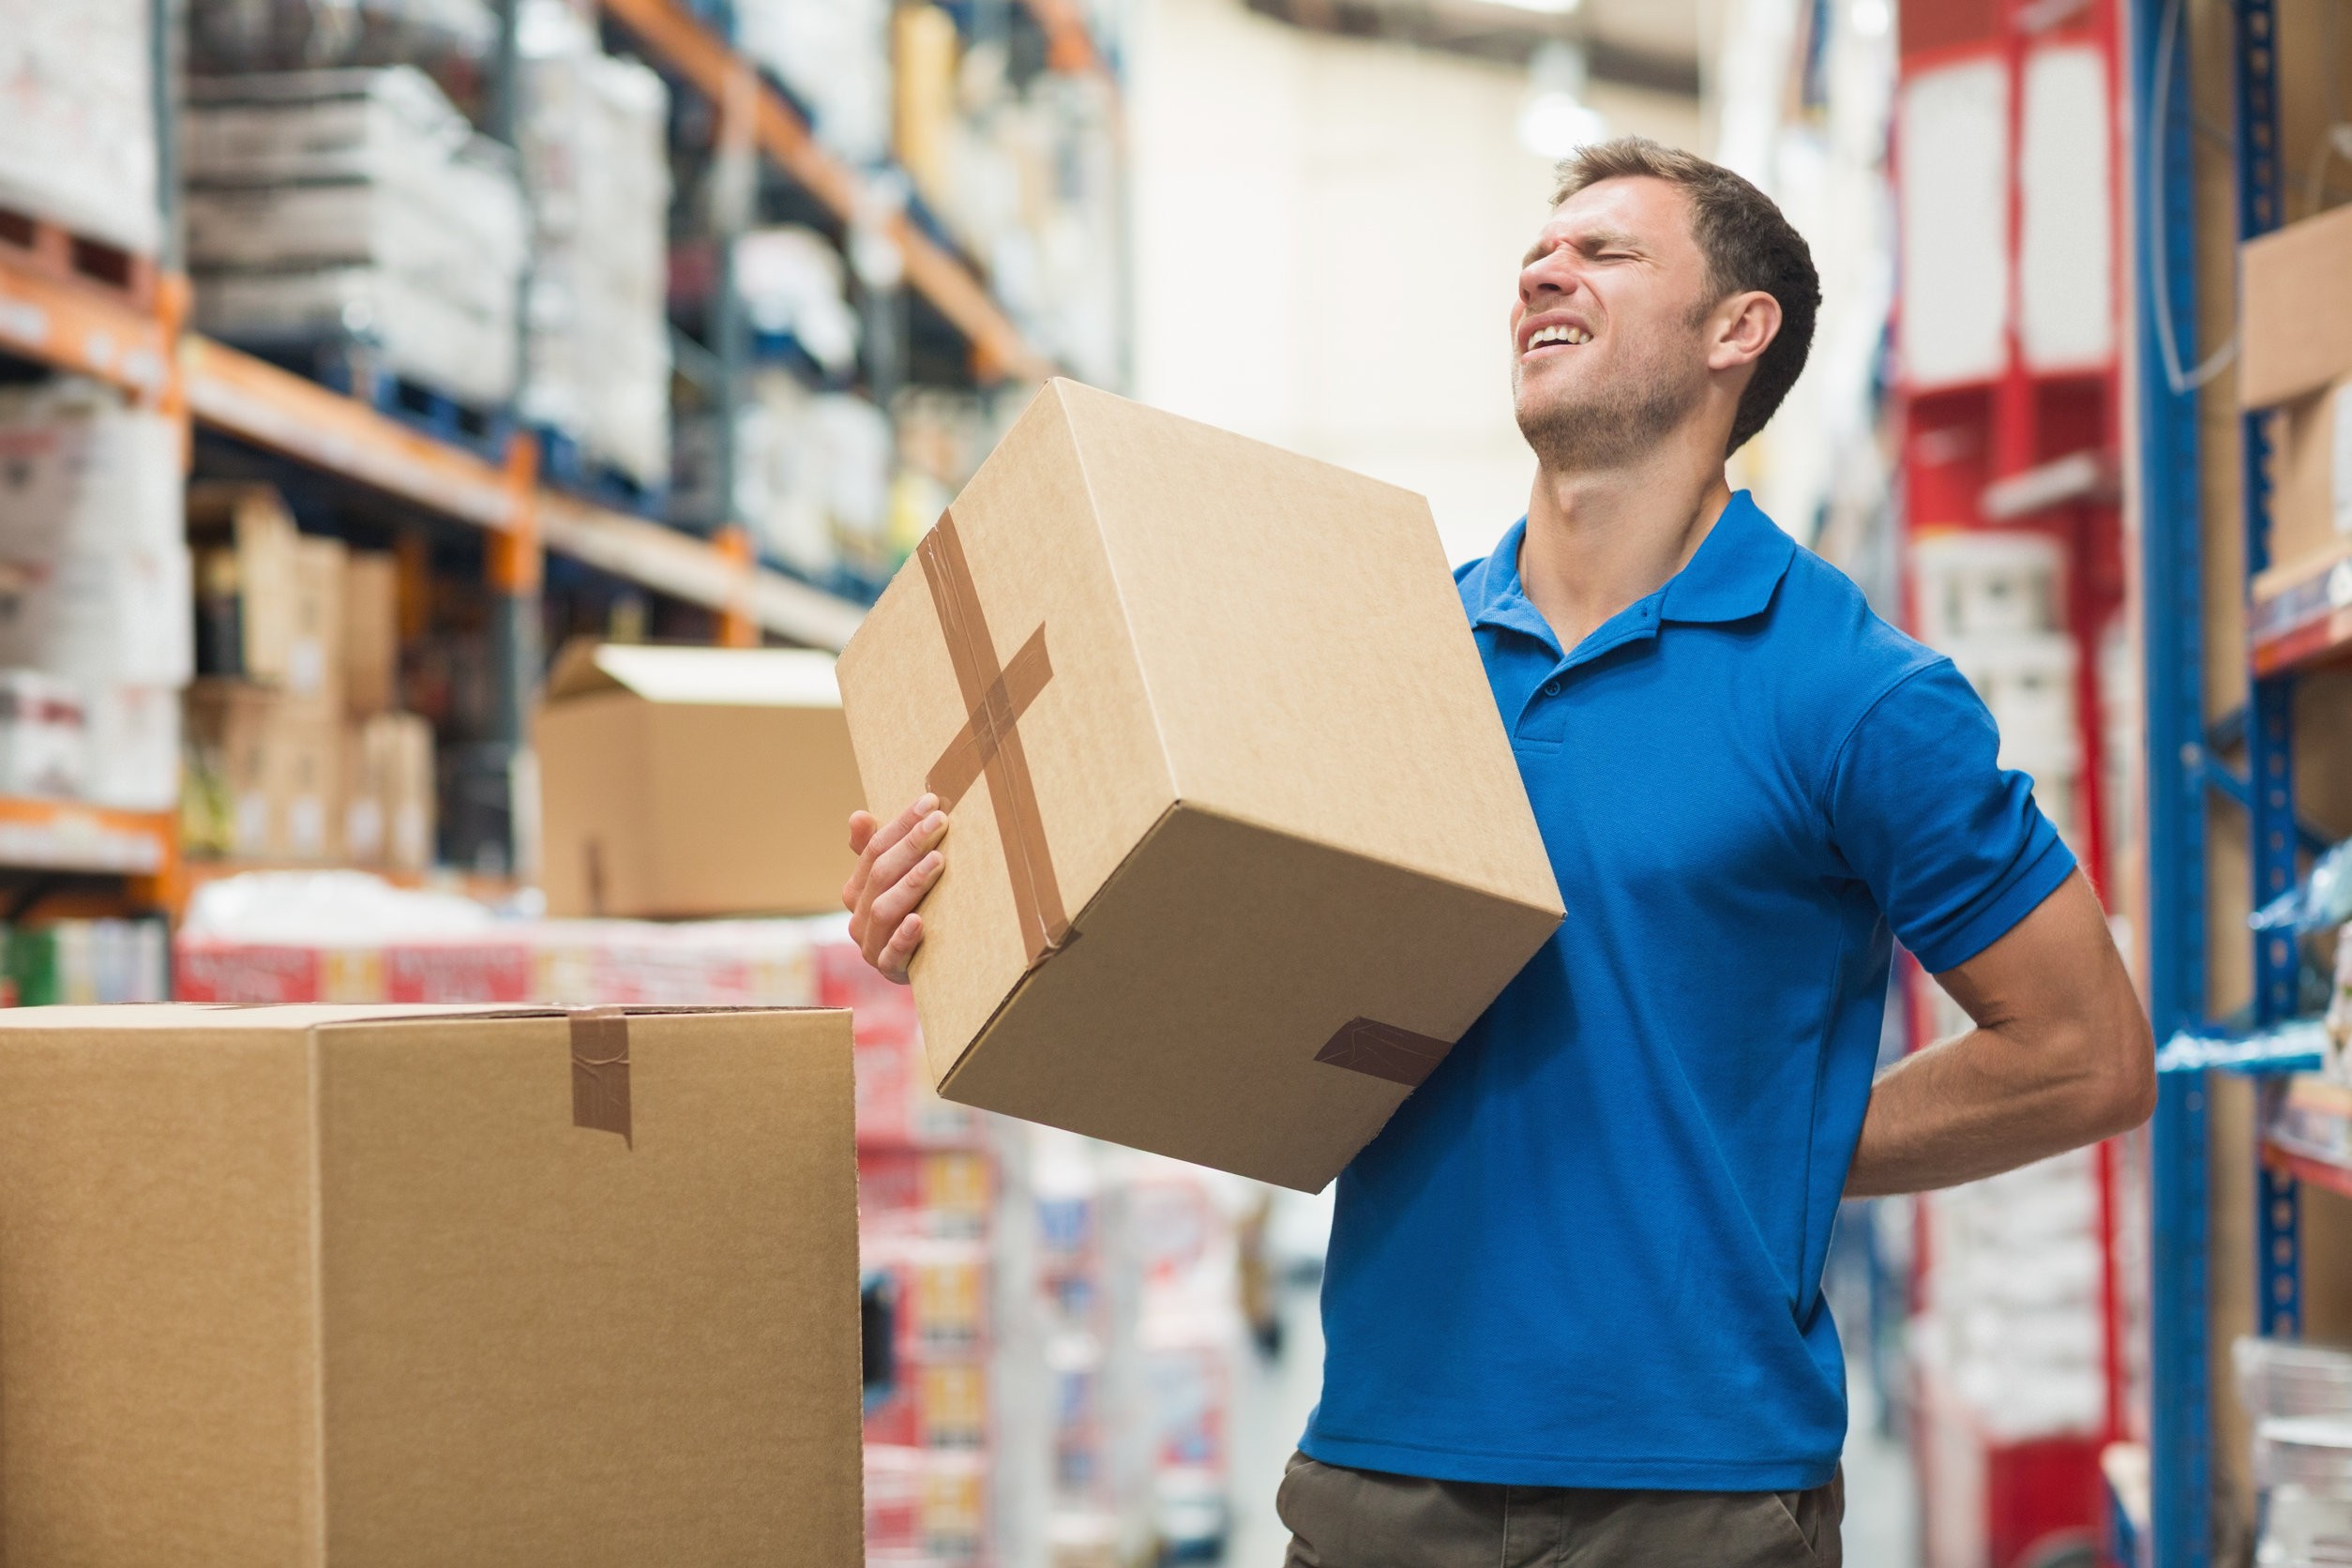 What are the consequences of poor manual handling